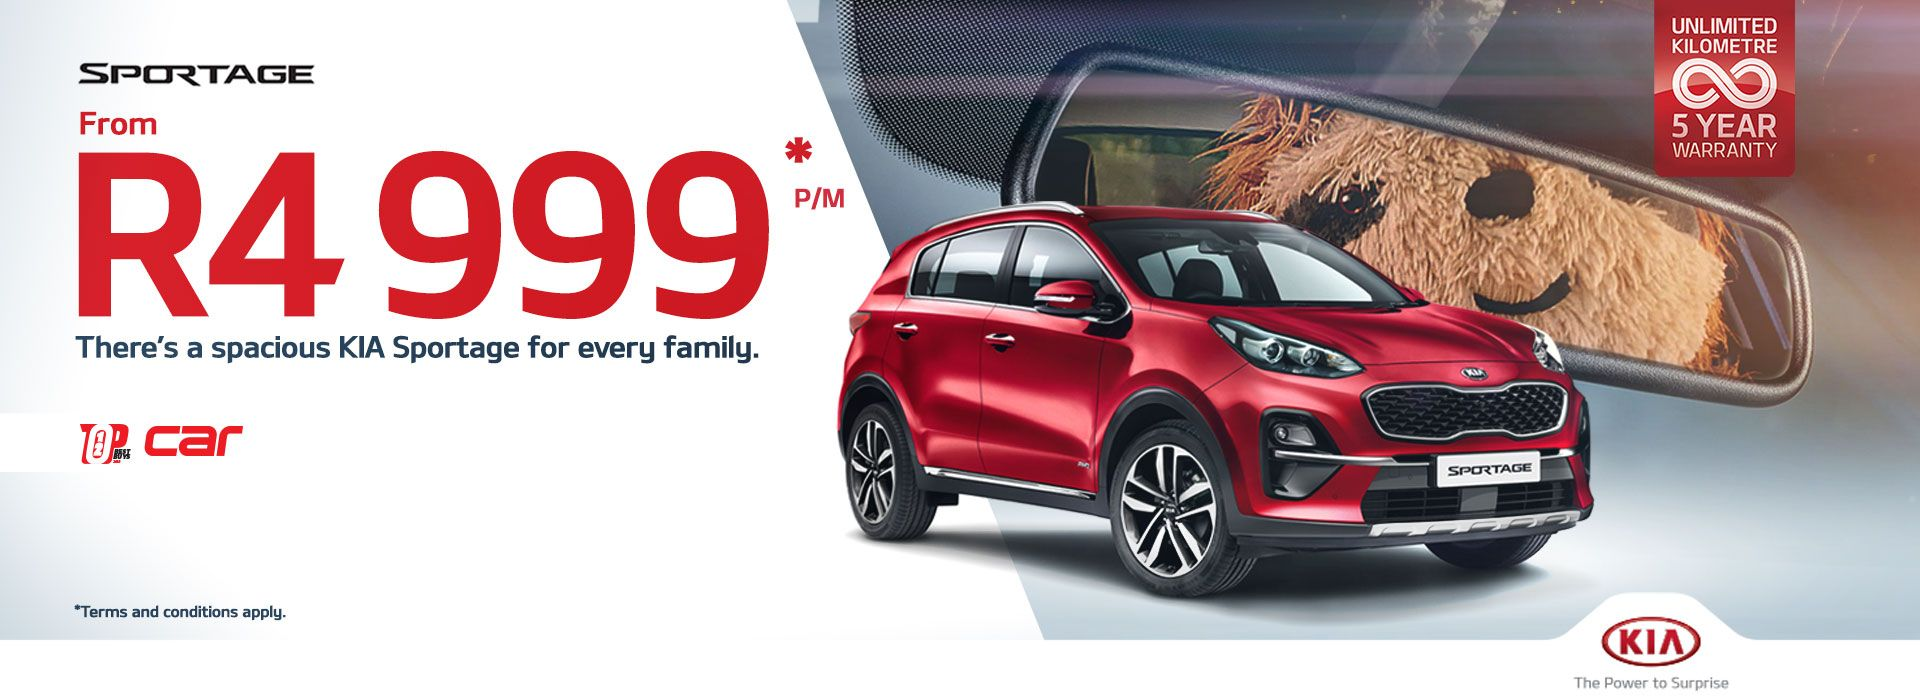 Sportage Home Holiday